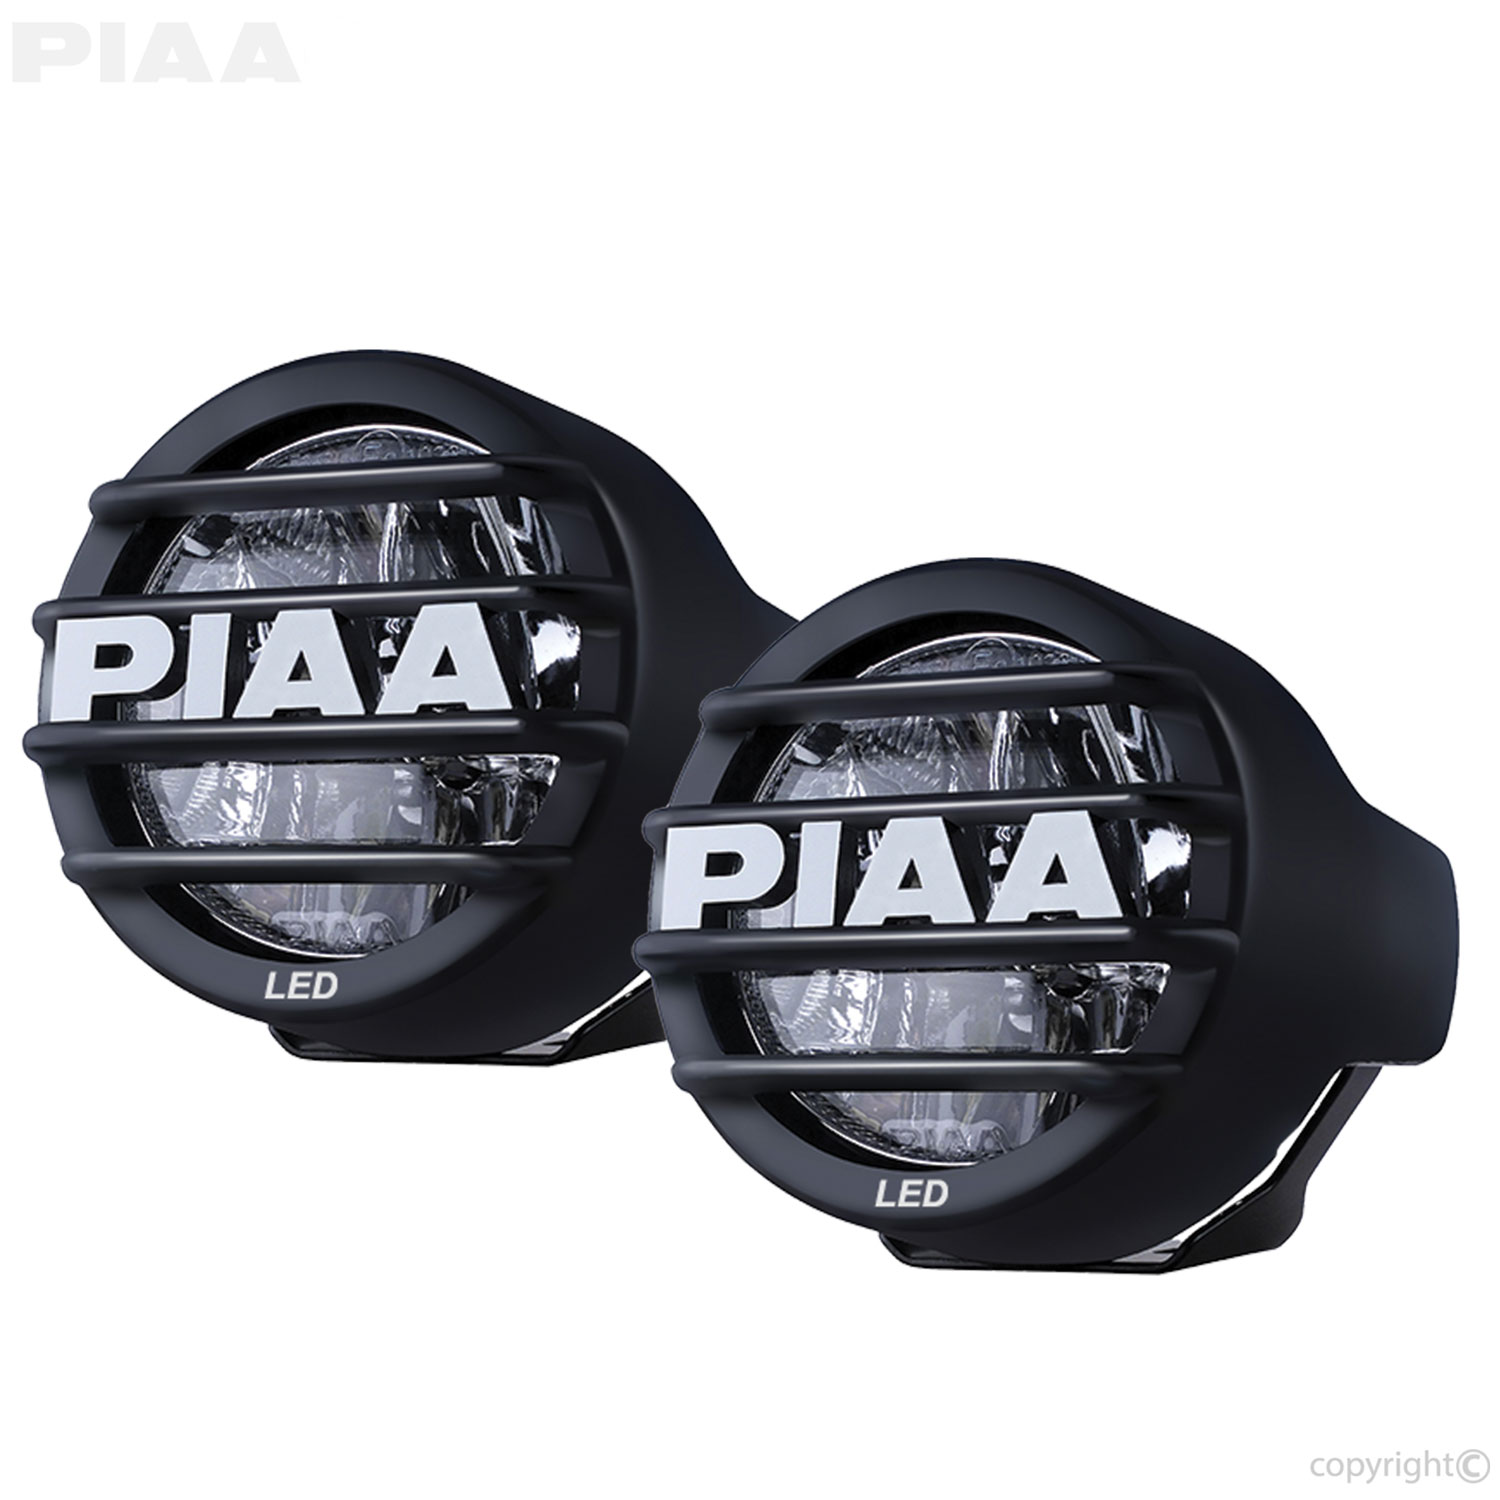 Piaa Motorcycle Lamps Universal Wiring Harness Kit Lp530 35 Led Fog Light Sae Compliant Lights